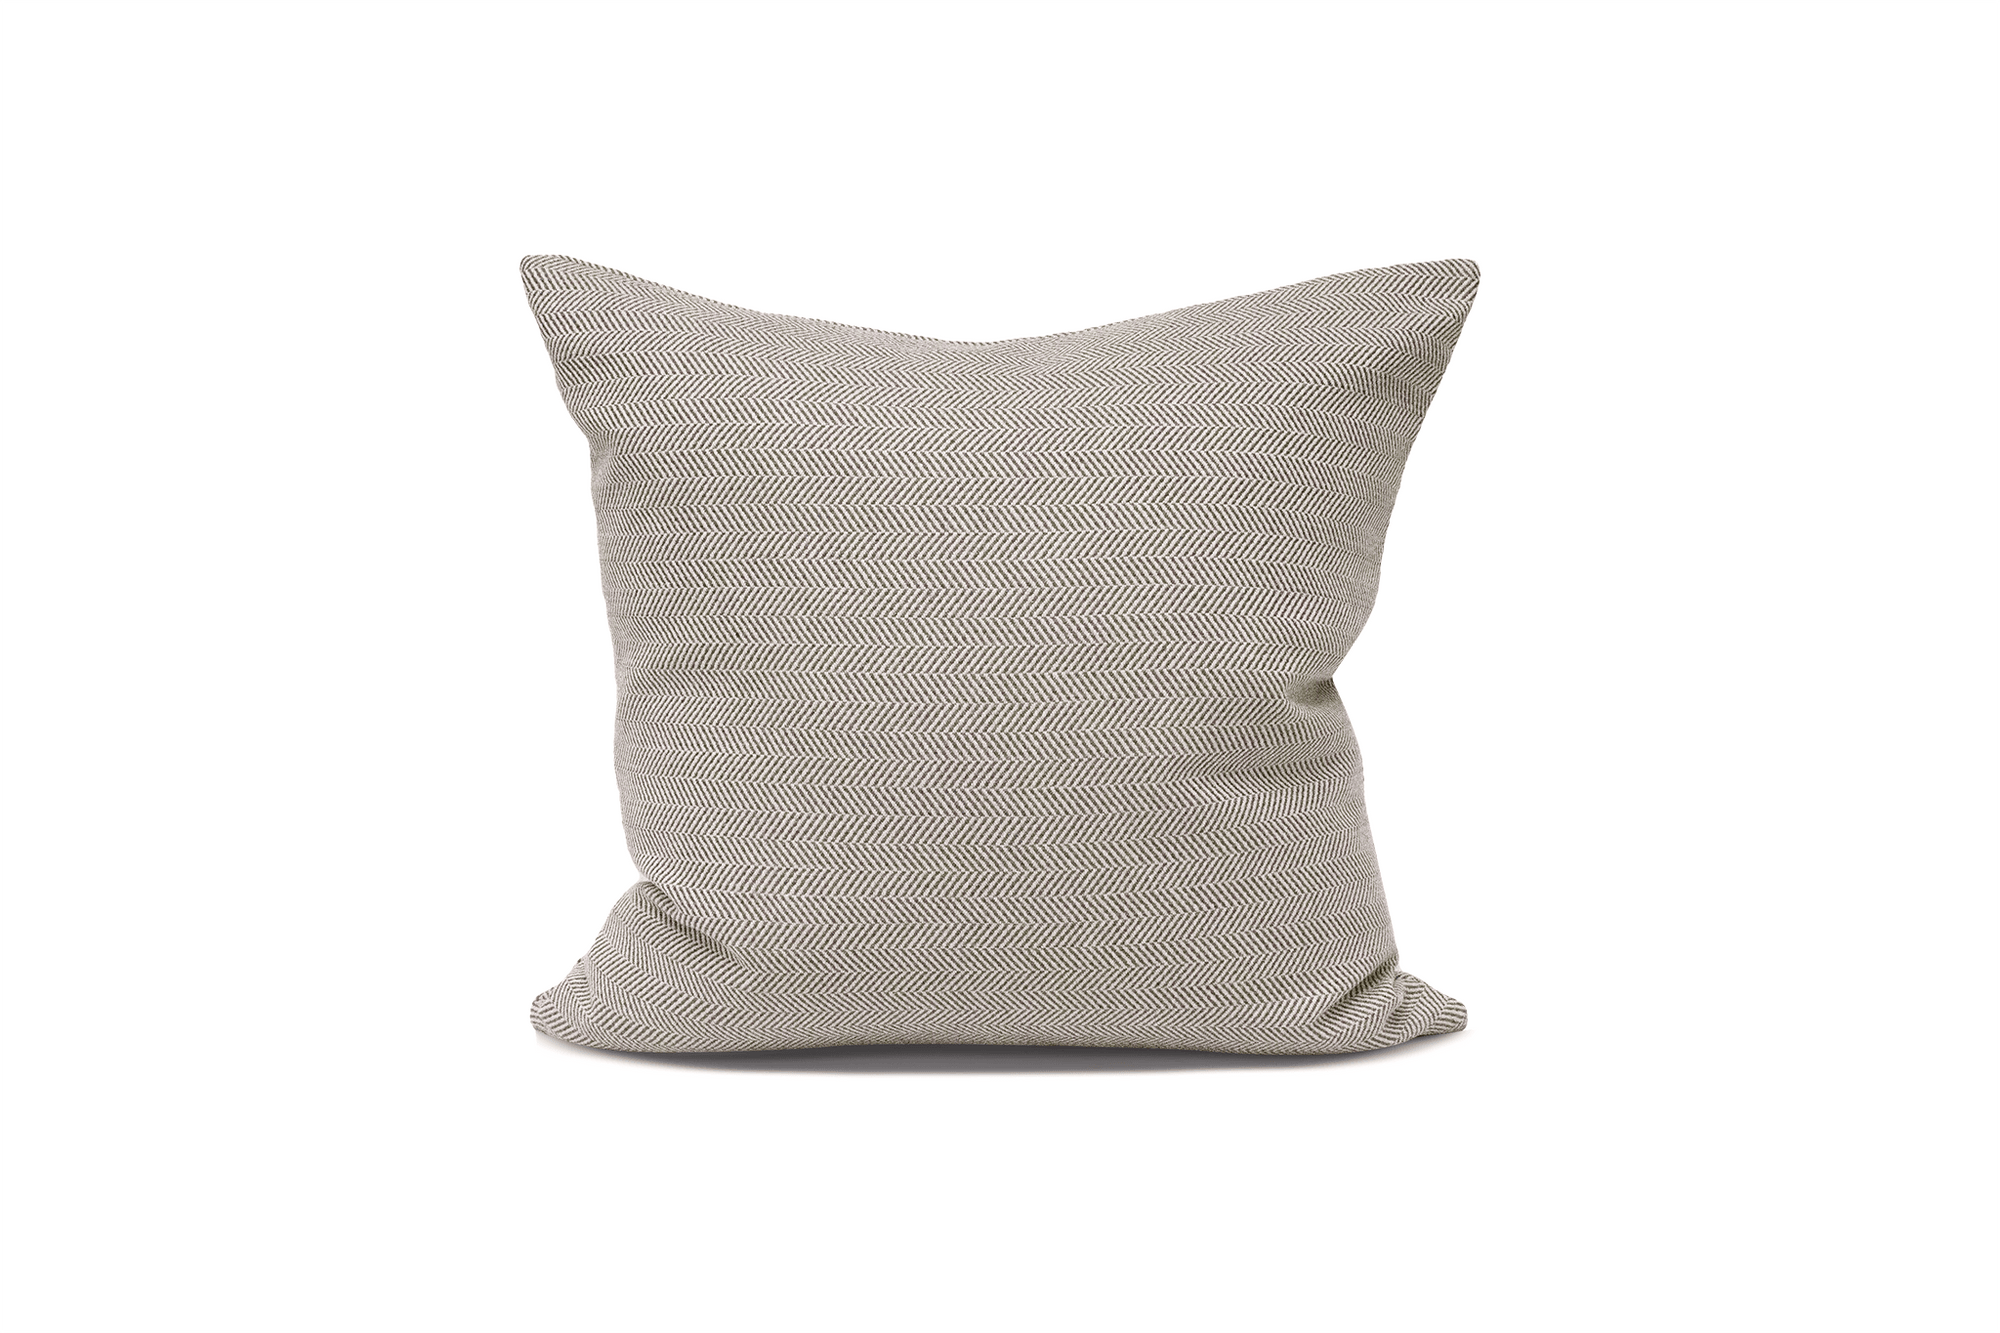 Concrete Herringbone Cushion Cover Cushion Cover Canadian Down & Feather Company